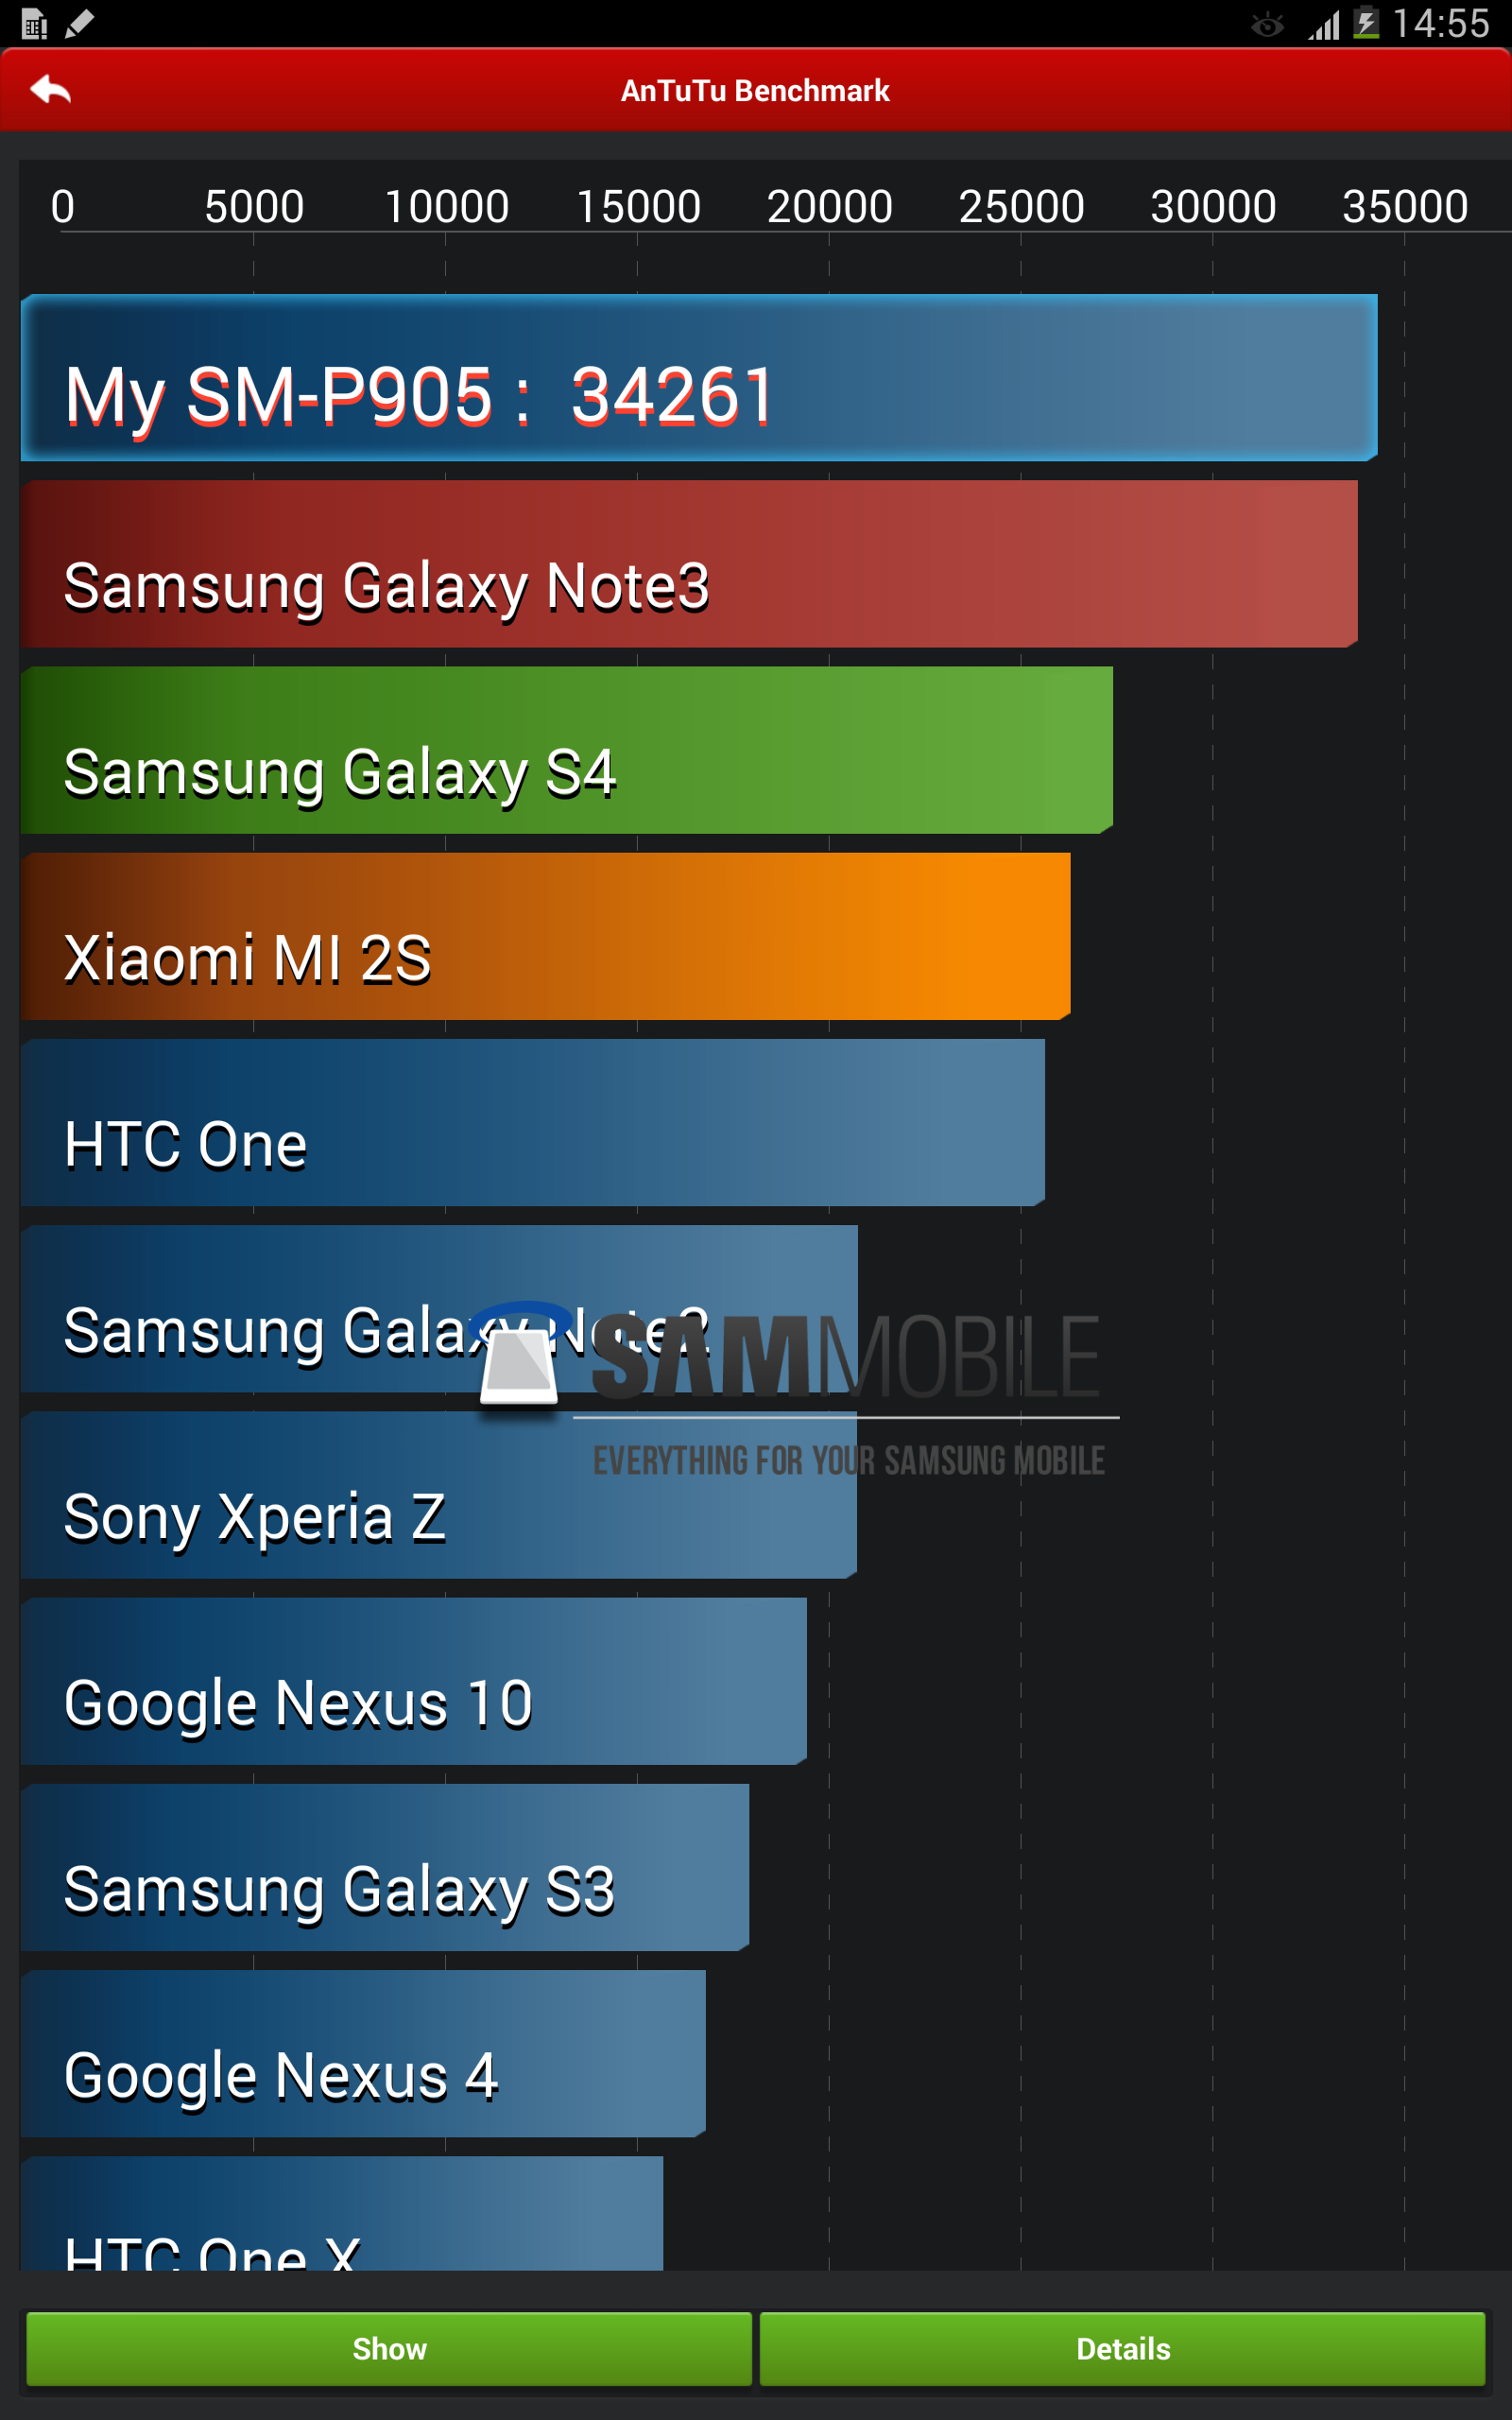 Samsung Galaxy Note 12.2 Spotted in AnTuTu Benchmark